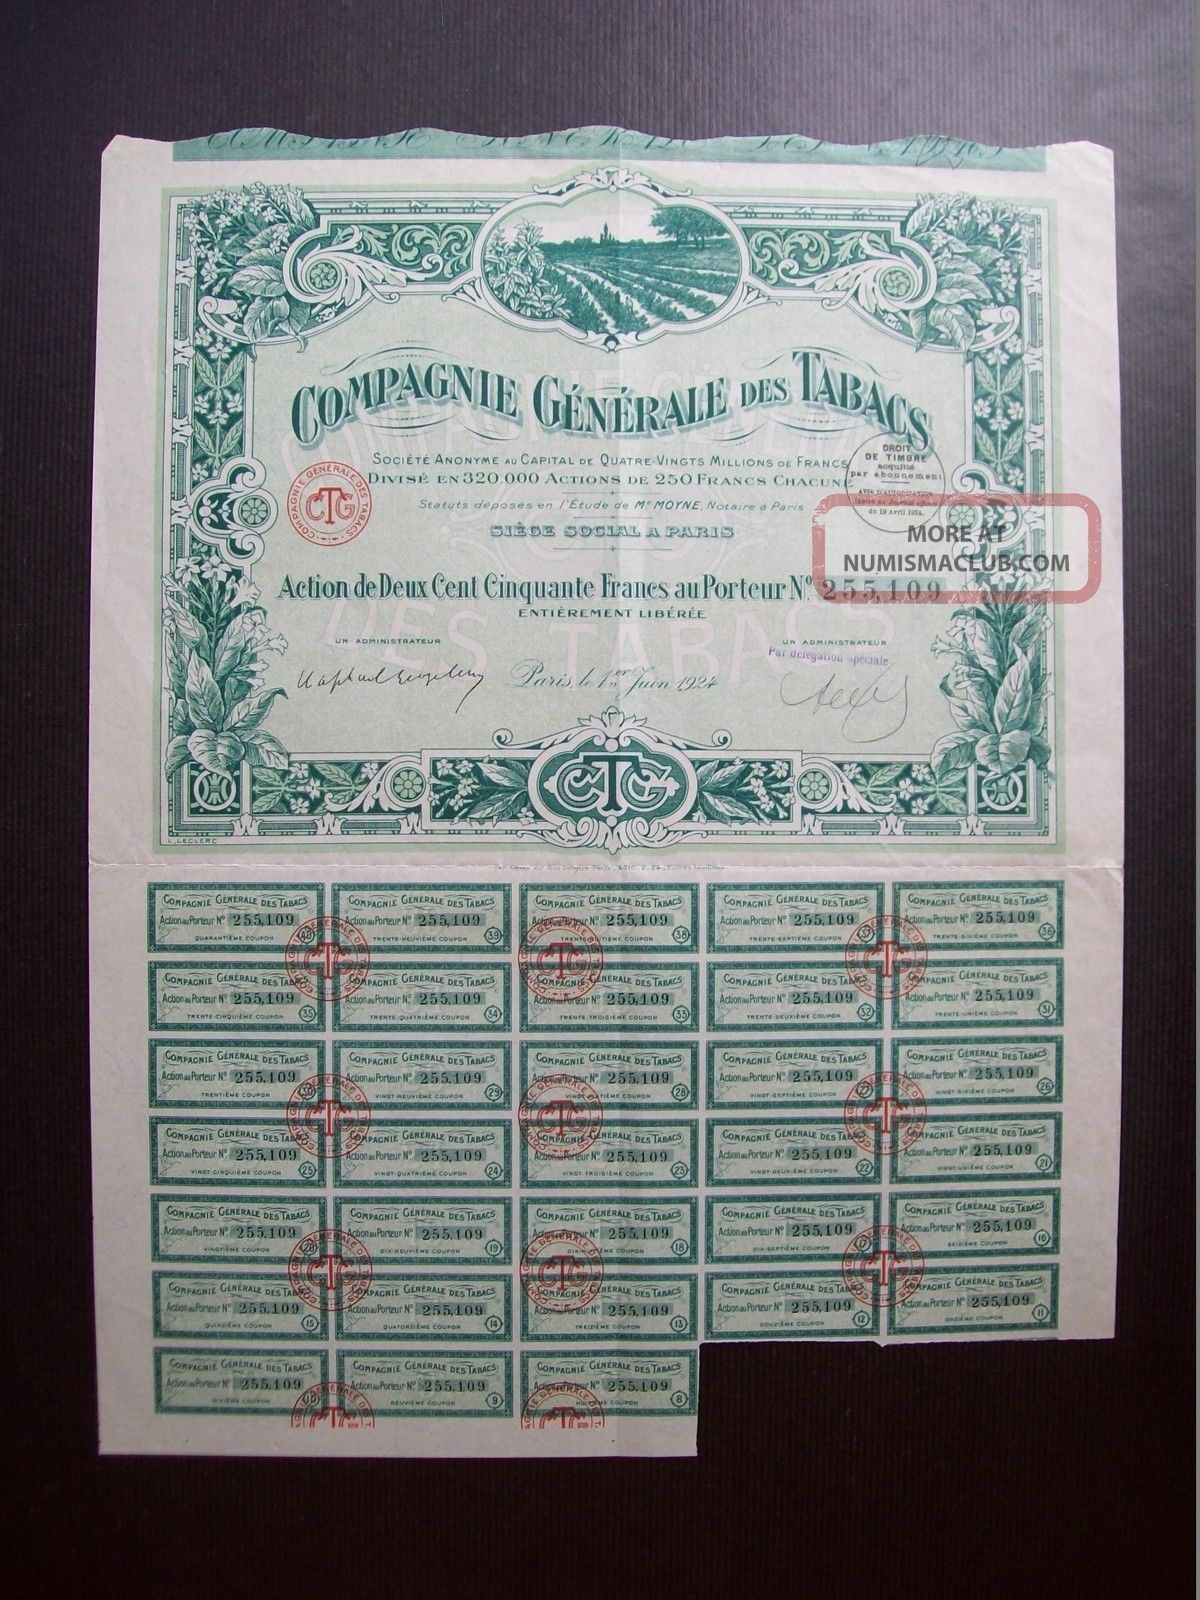 France 1924 Illustrated Bond Certificate Compagnie Generale Des Tabacs.  B978 World photo